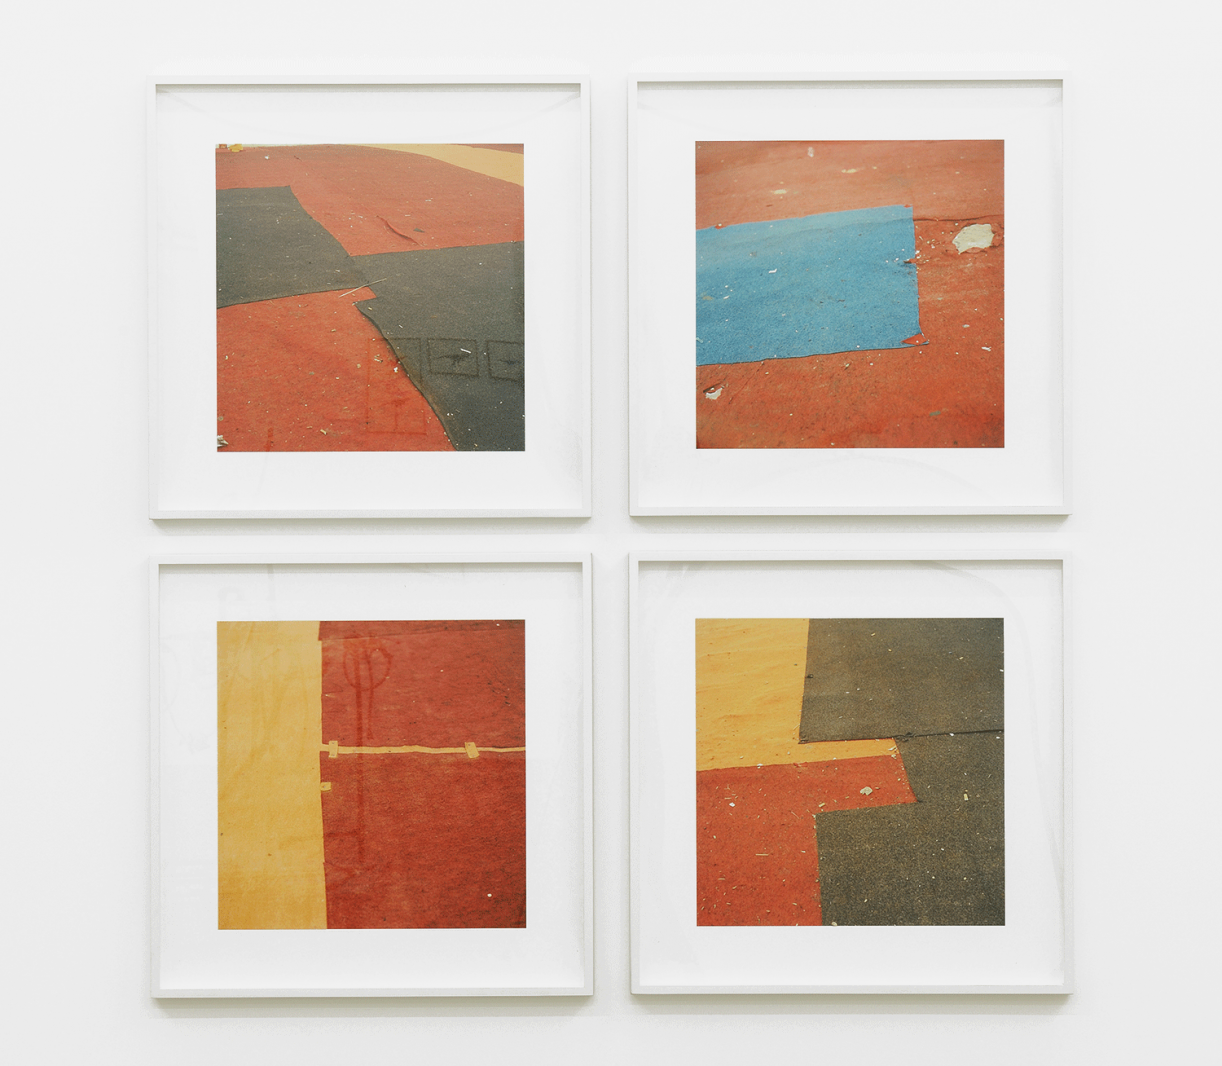 Untitled (felt circus flooring, Tangier), 2013-2015, chromogenic, prints, 30 x 30 cm / 50 x 50 cm each